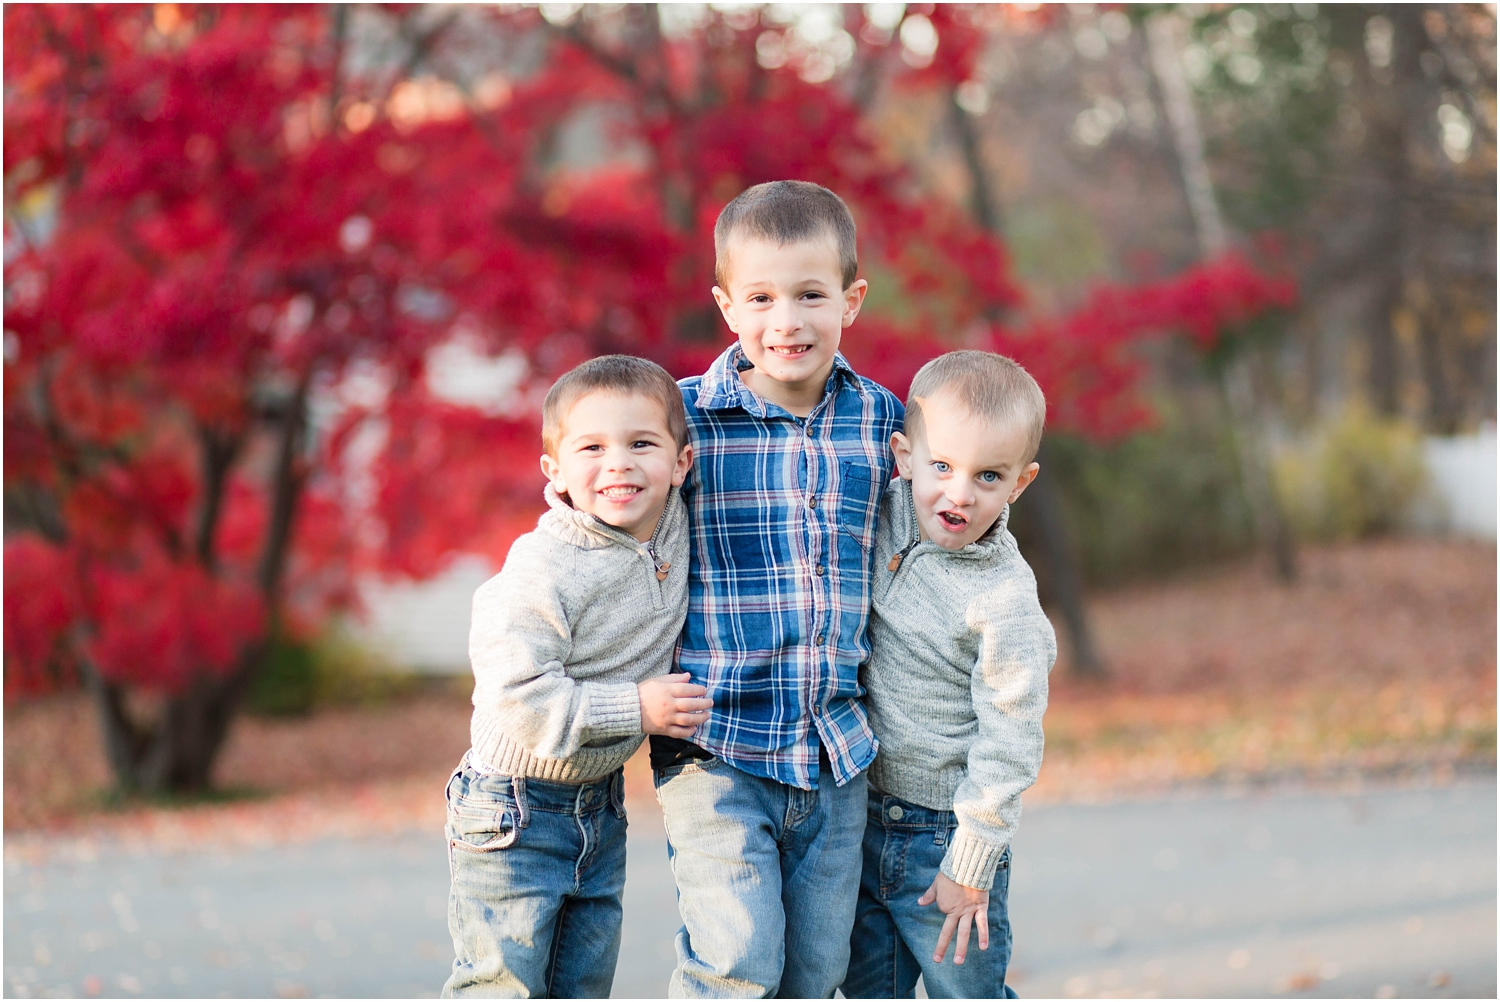 P Family // Fall family session — Private Photo Editor and Photographer